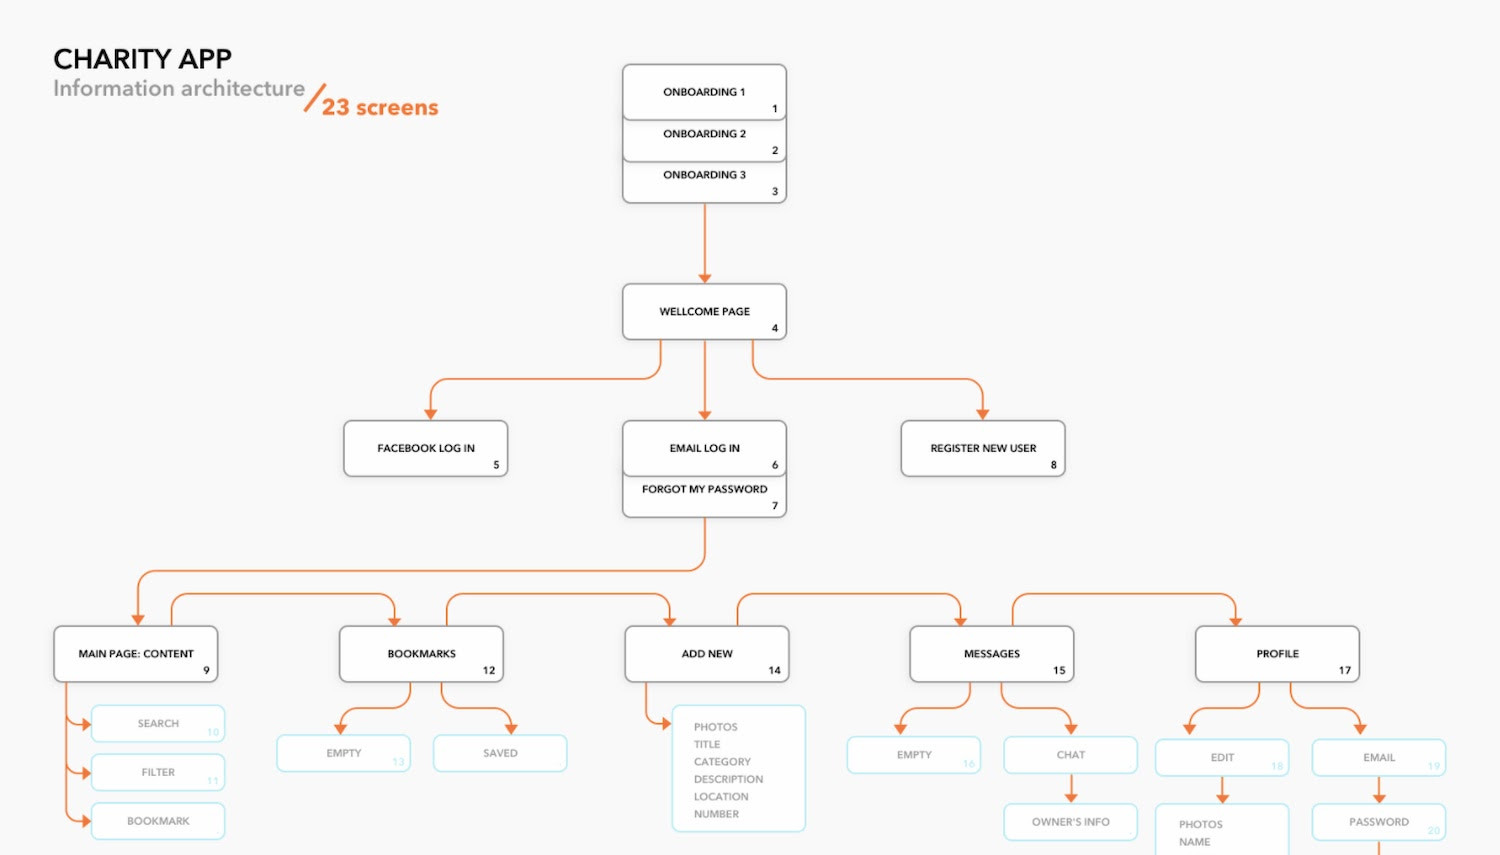 Charity app Information Architecture Diagram Example